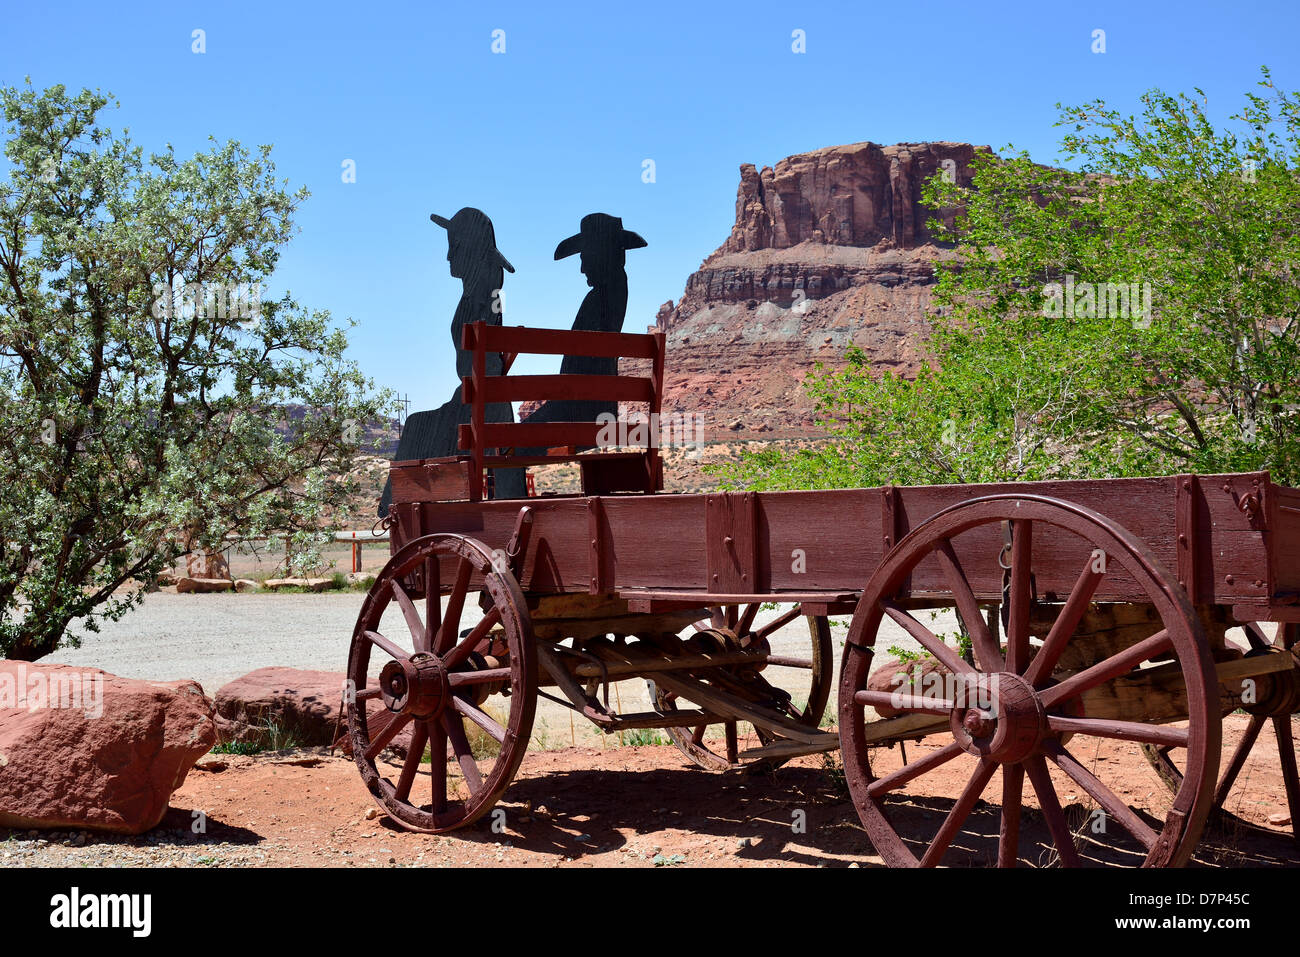 A wooden wagon with cutouts of old west pioneers. Moab, Utah, USA. - Stock Image